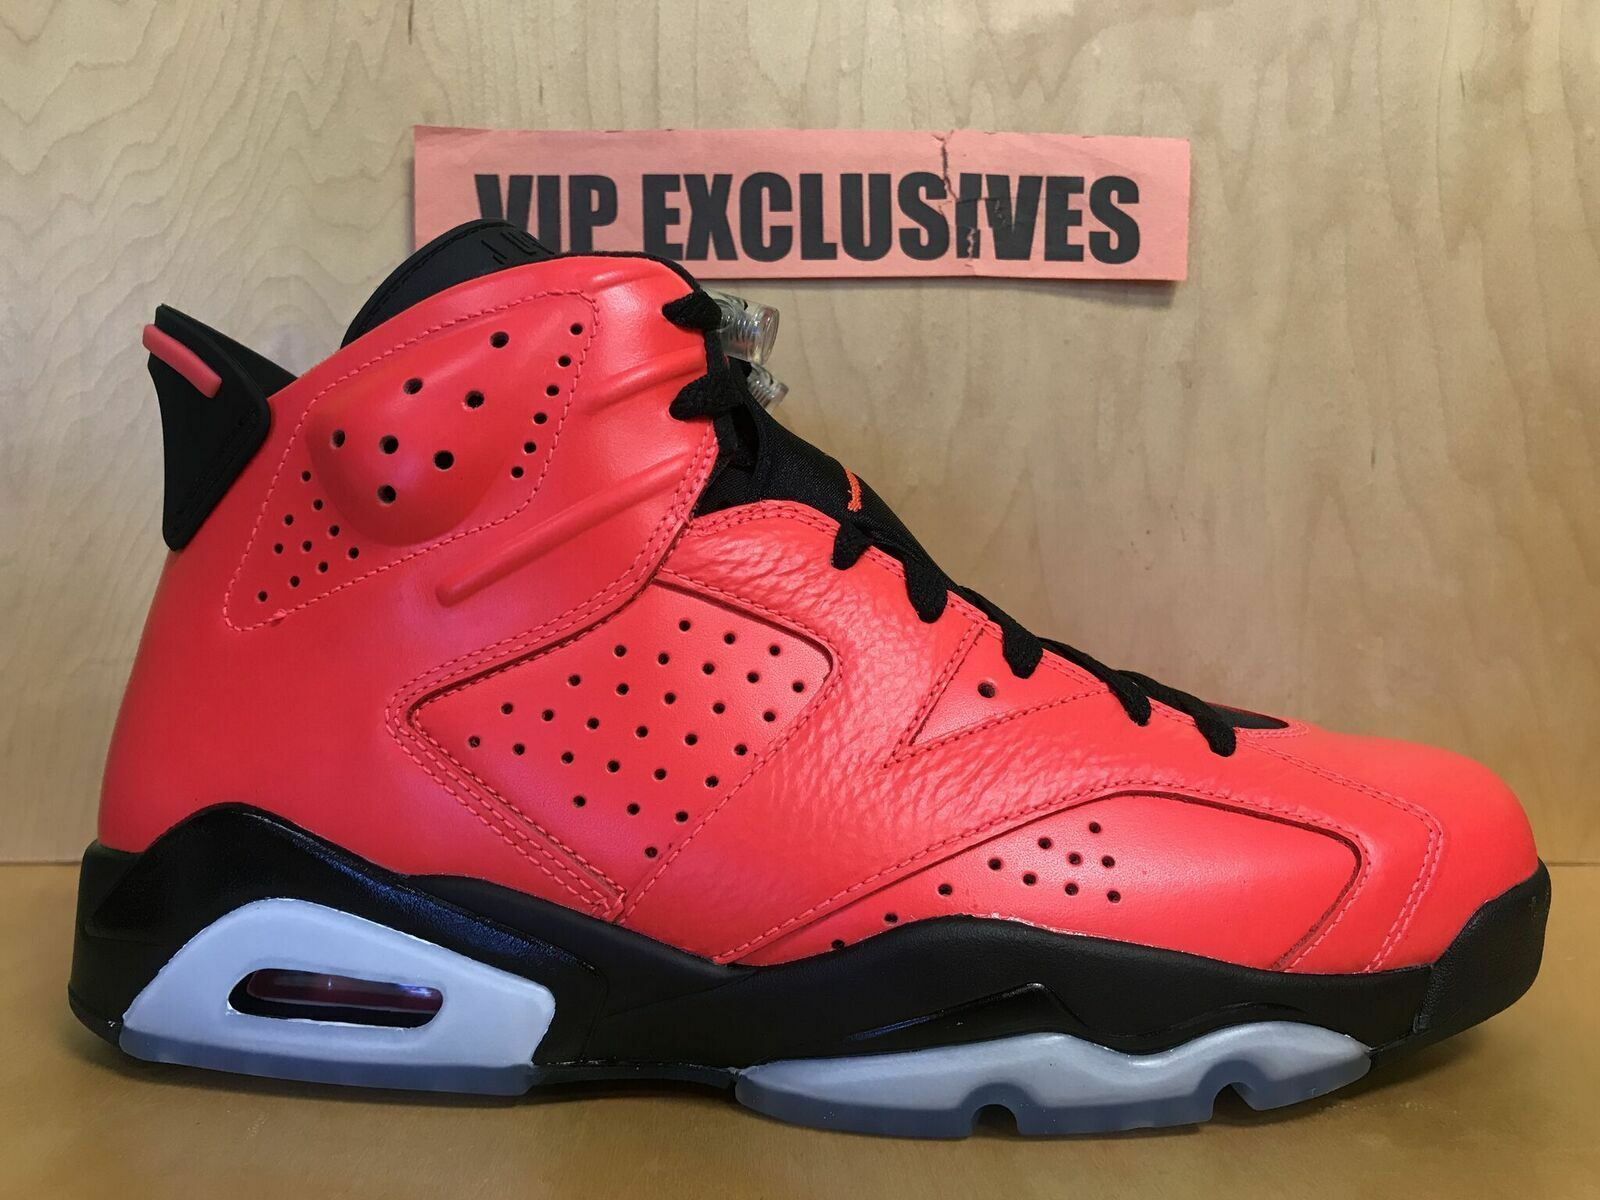 Nike Air Jordan VI Retro 6 Black Infrared 23 Tgold 384664-623 Size 10